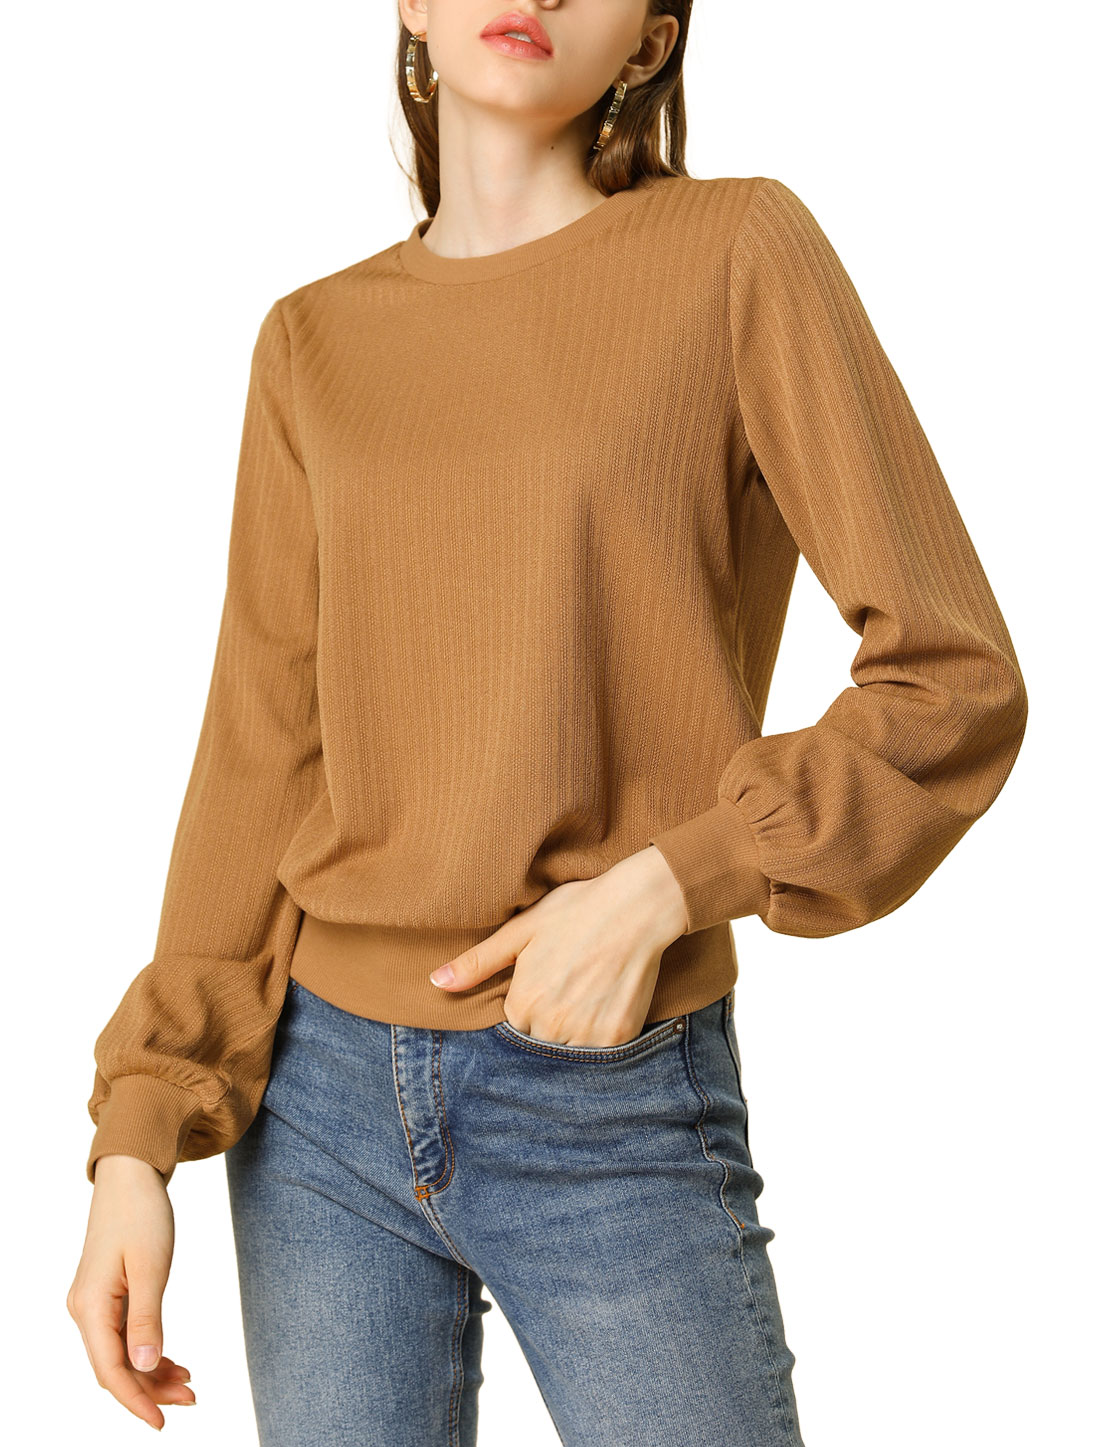 Allegra K Women's Classic Lantern Sleeves Blouson Ribbed Top Sweater Brown M